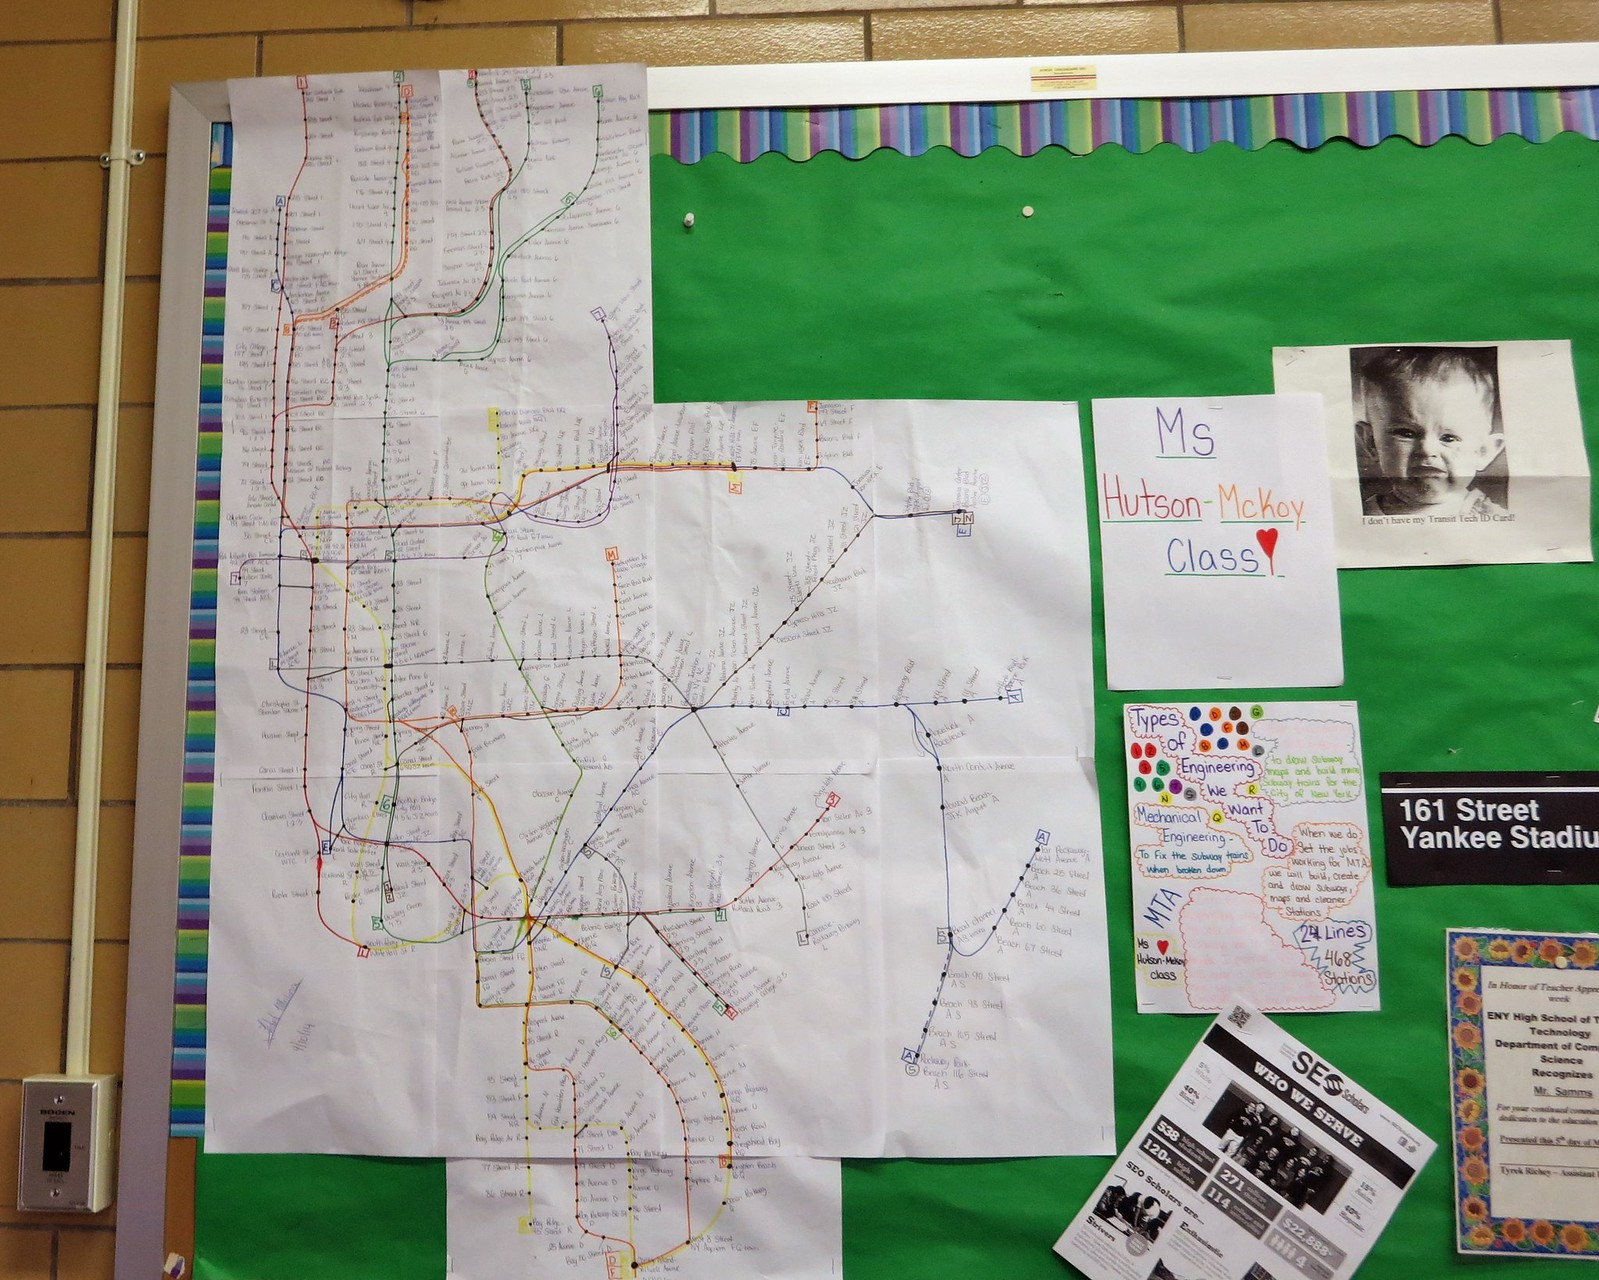 Transit Tech Career and Technical Education High School